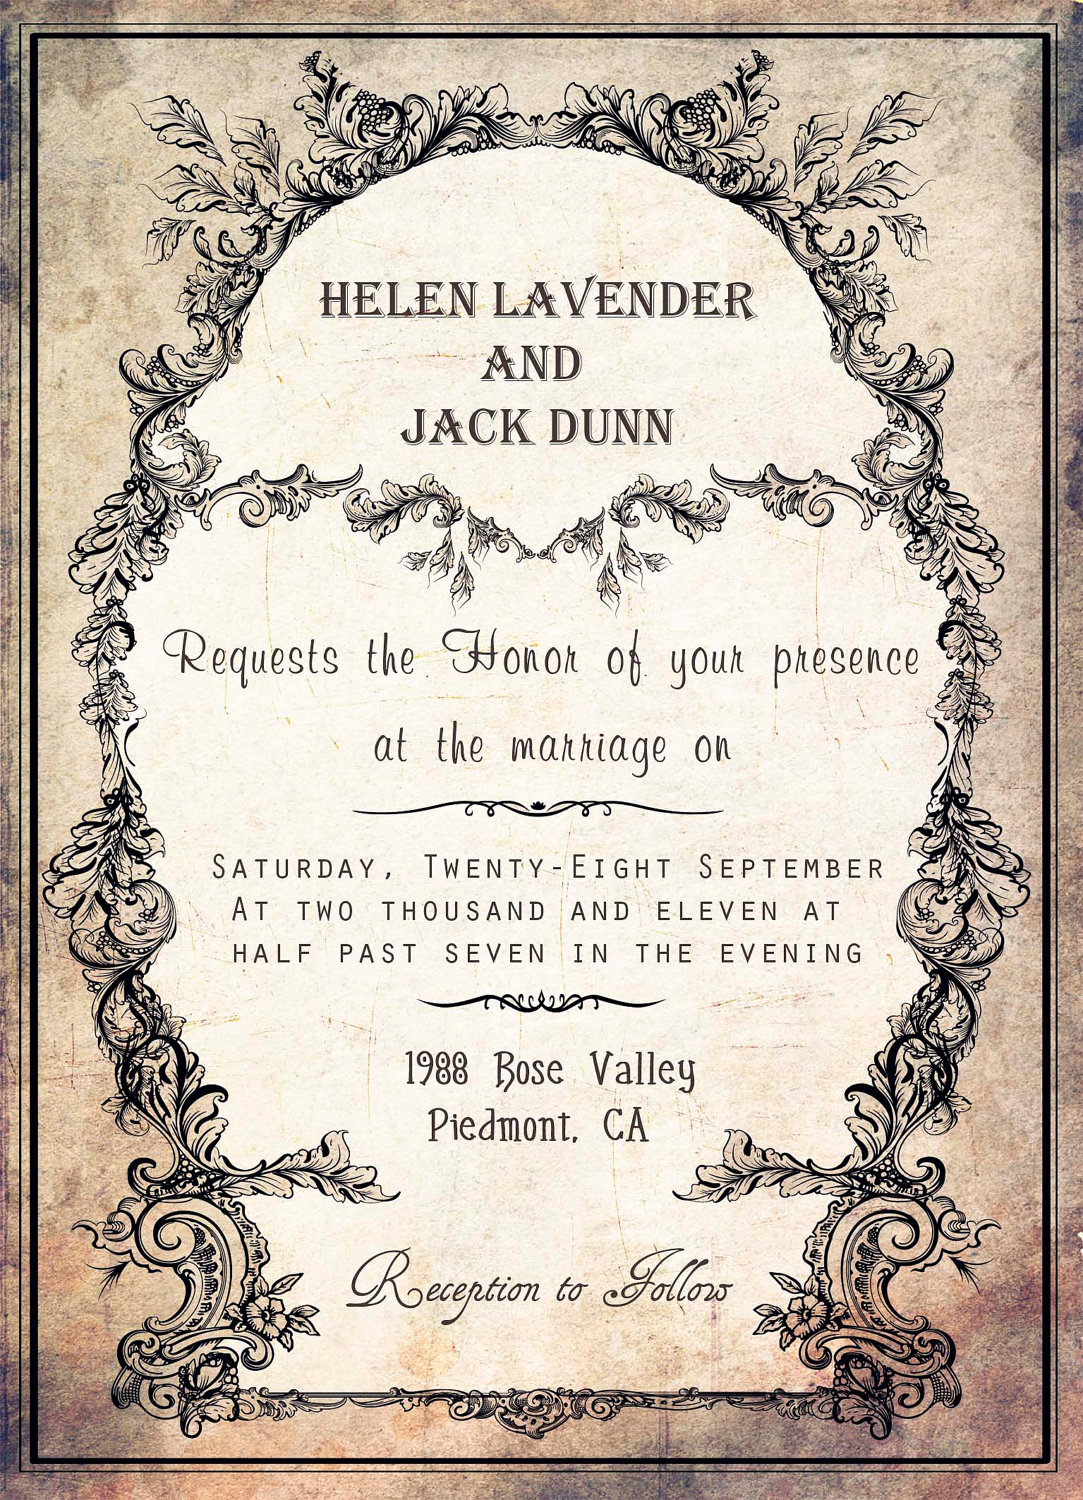 Free Wedding Invitations Templates is an amazing ideas you had to choose for invitation design